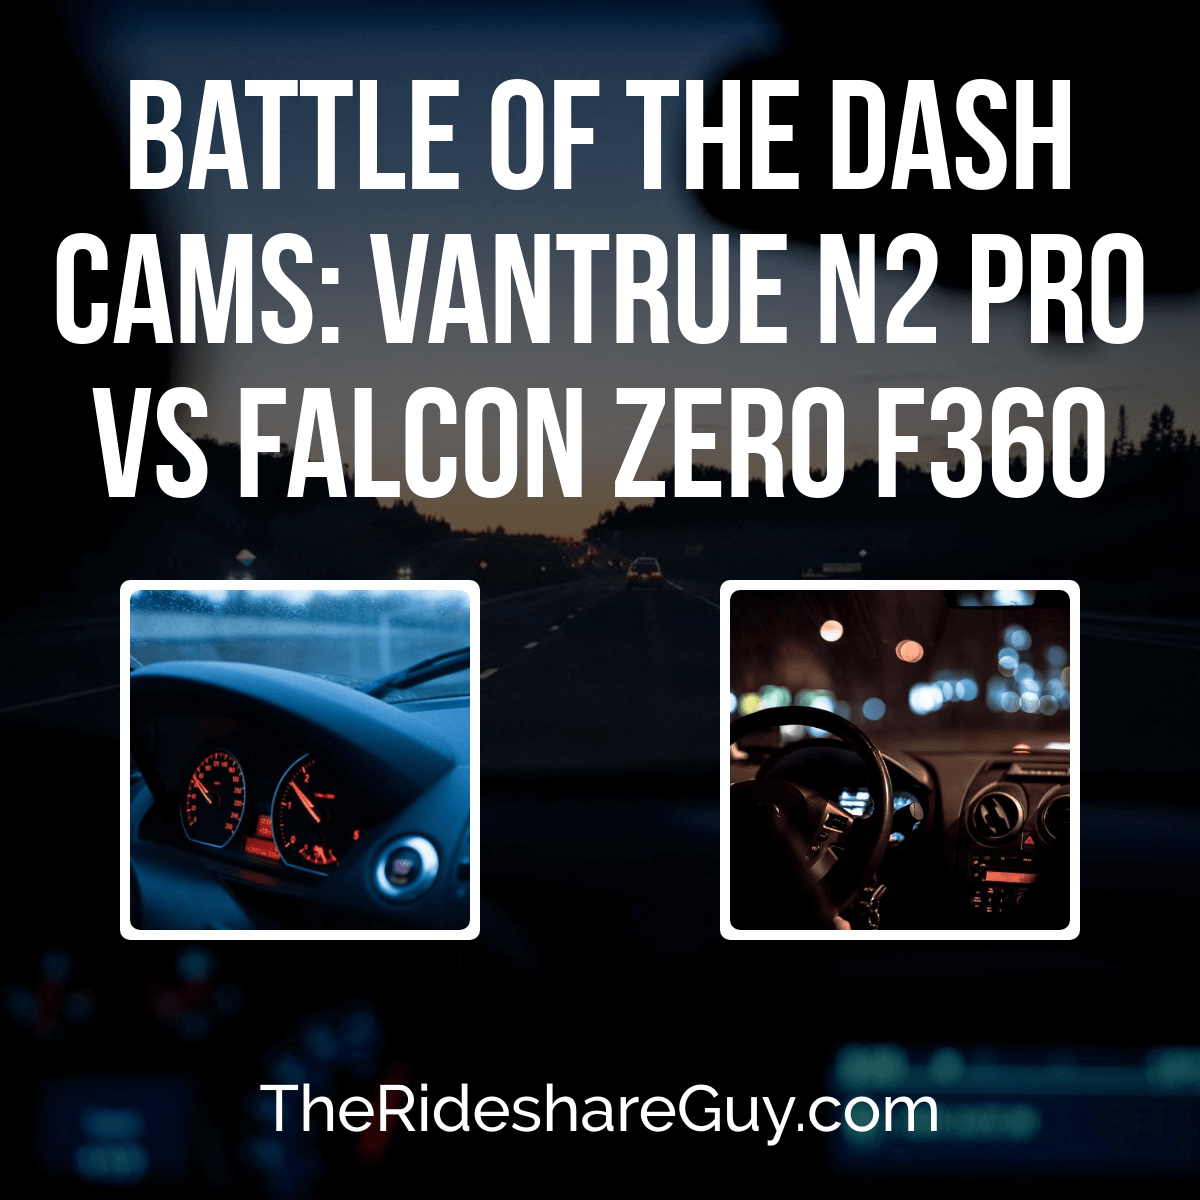 If you've been driving for any period of time, you know how important it is to have a dash camera. But how do you know which one to choose without testing it out? Senior RSG contributor Will Preston tests out two of the heavyweights and shares his results below.